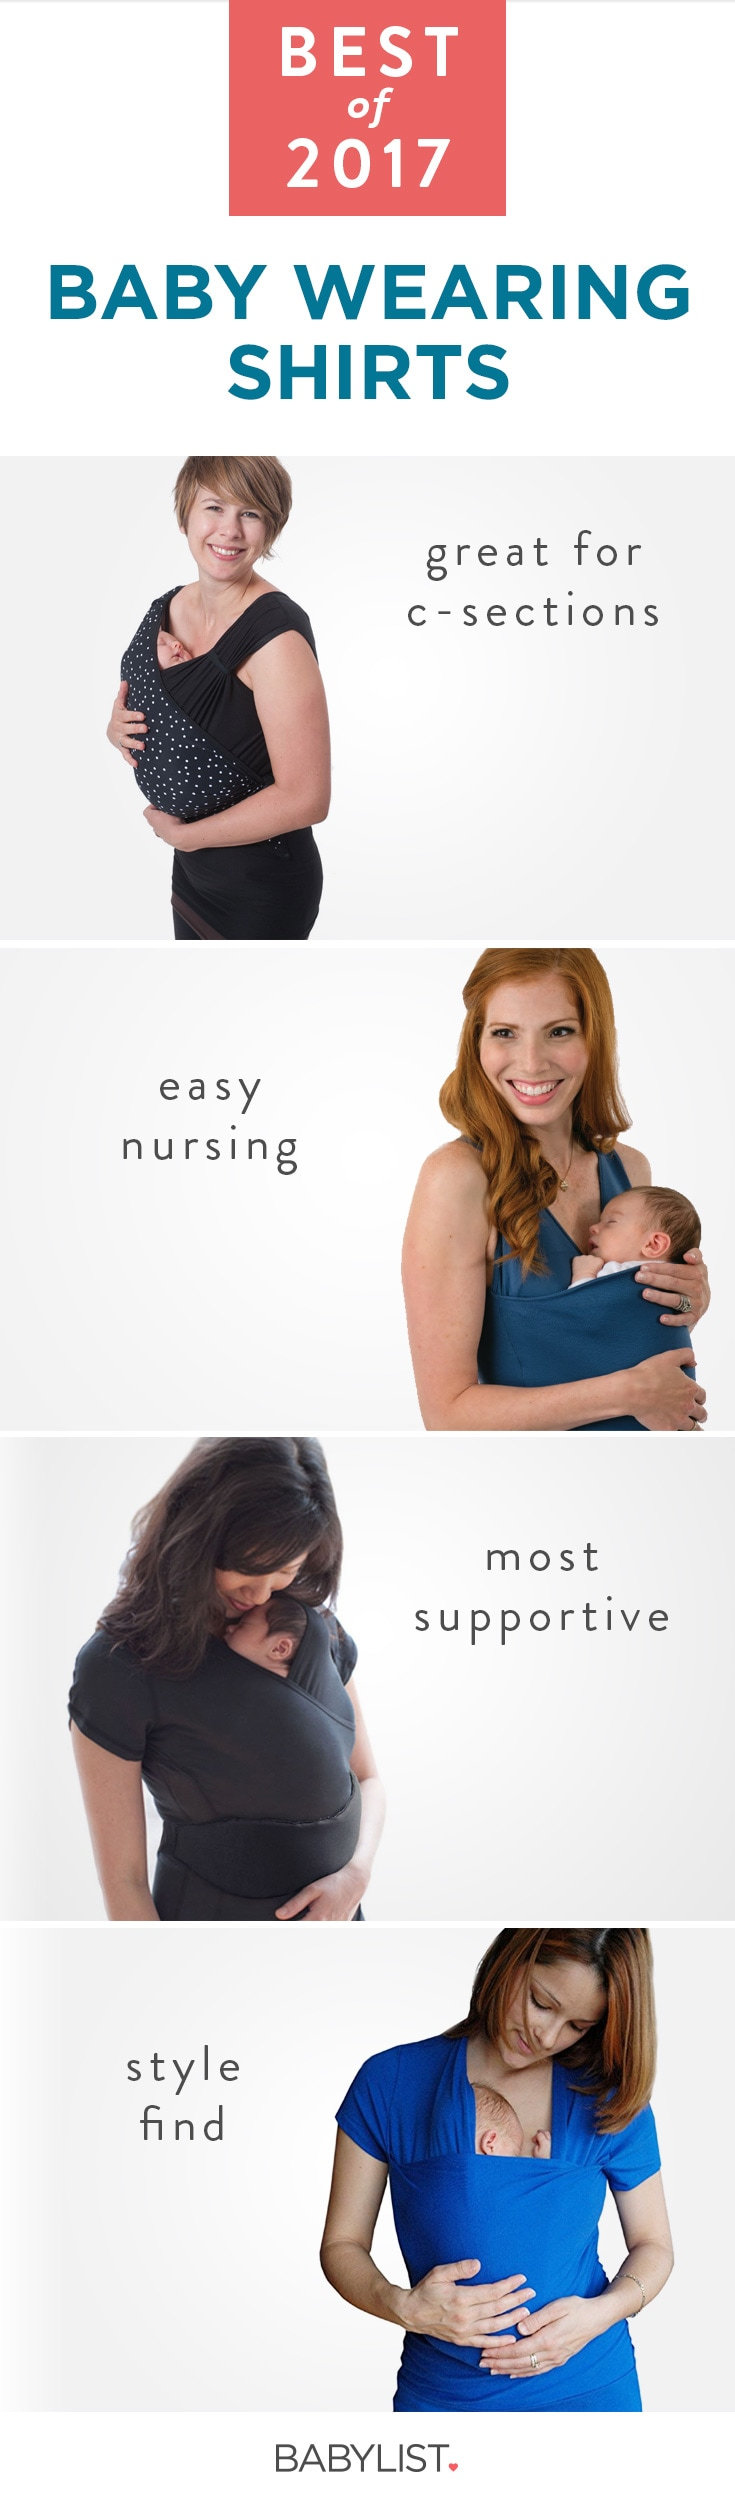 Keep that snuggle going strong with the four best babywearing shirts.